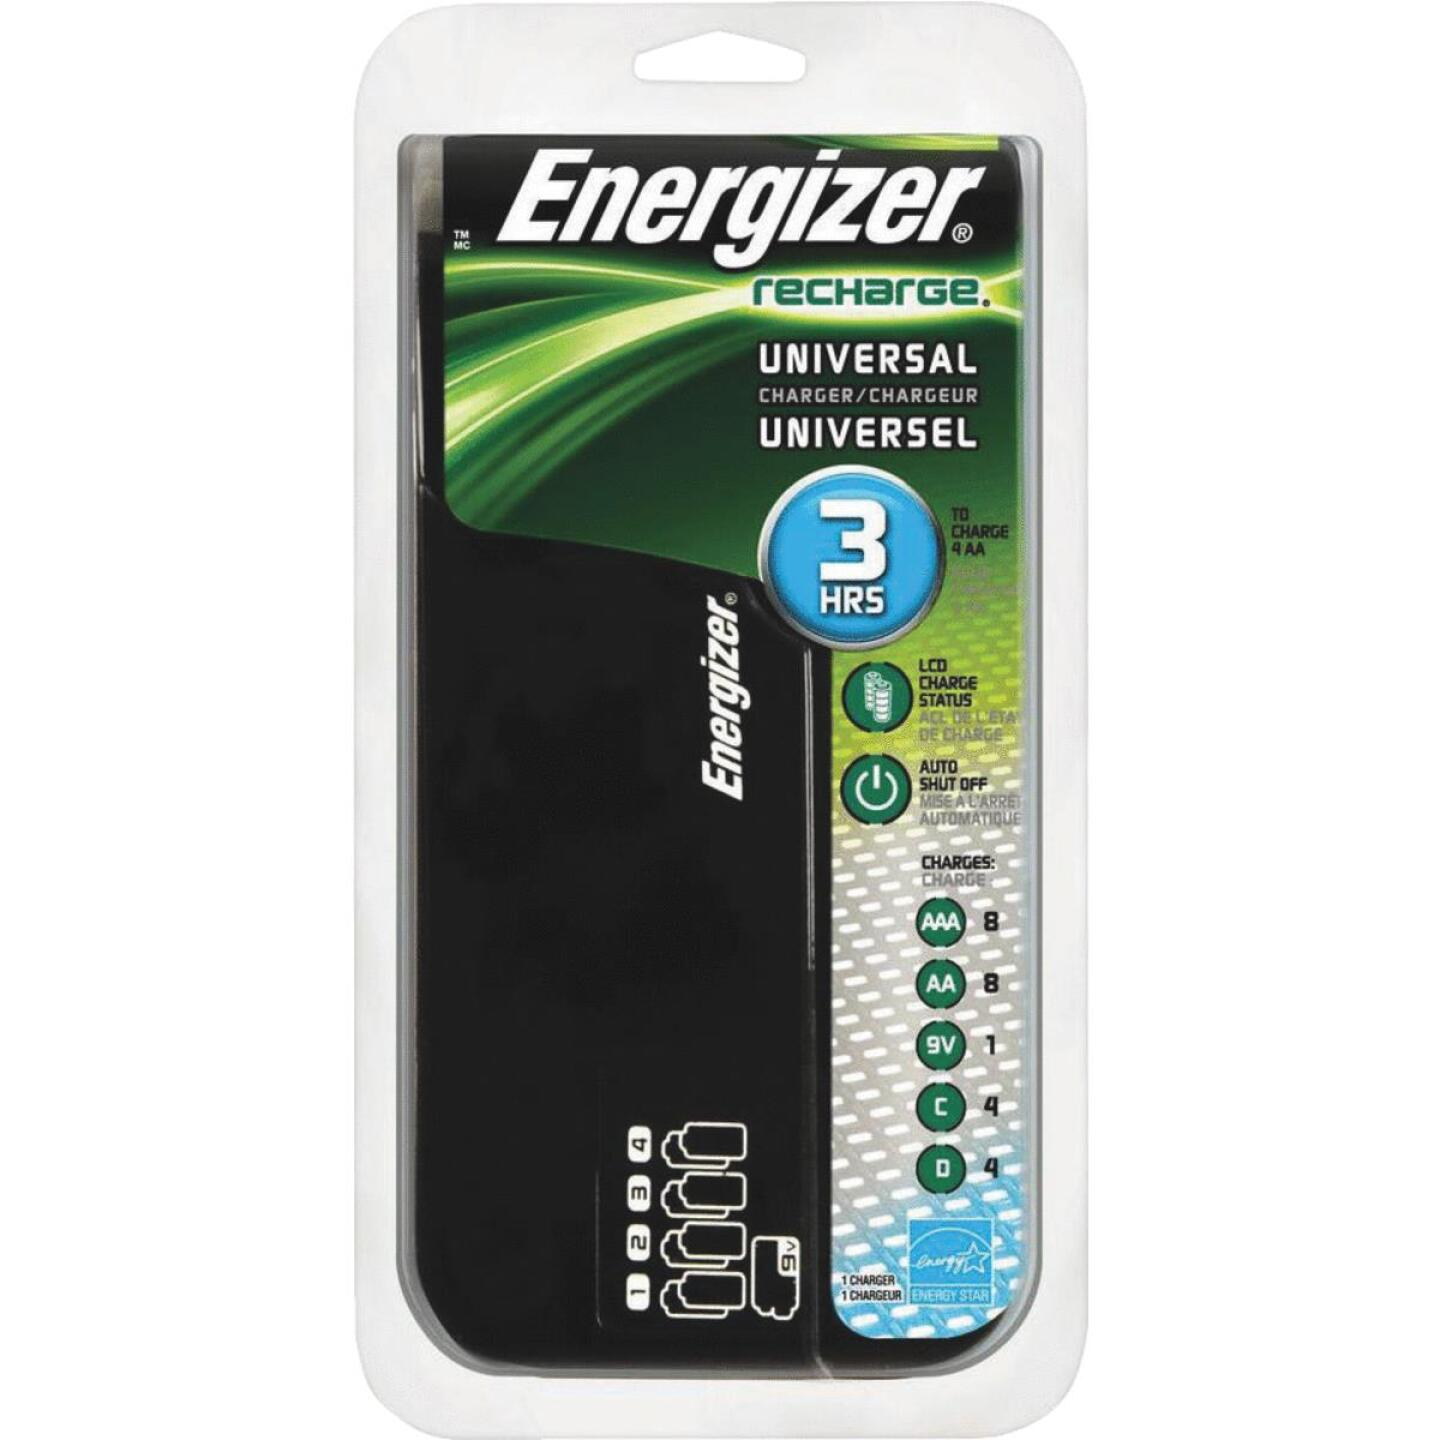 Energizer (8) AA, (8) AAA, (4) C, (4) D, (1) 9V NiMH Recharge Universal Battery Power Station Image 1